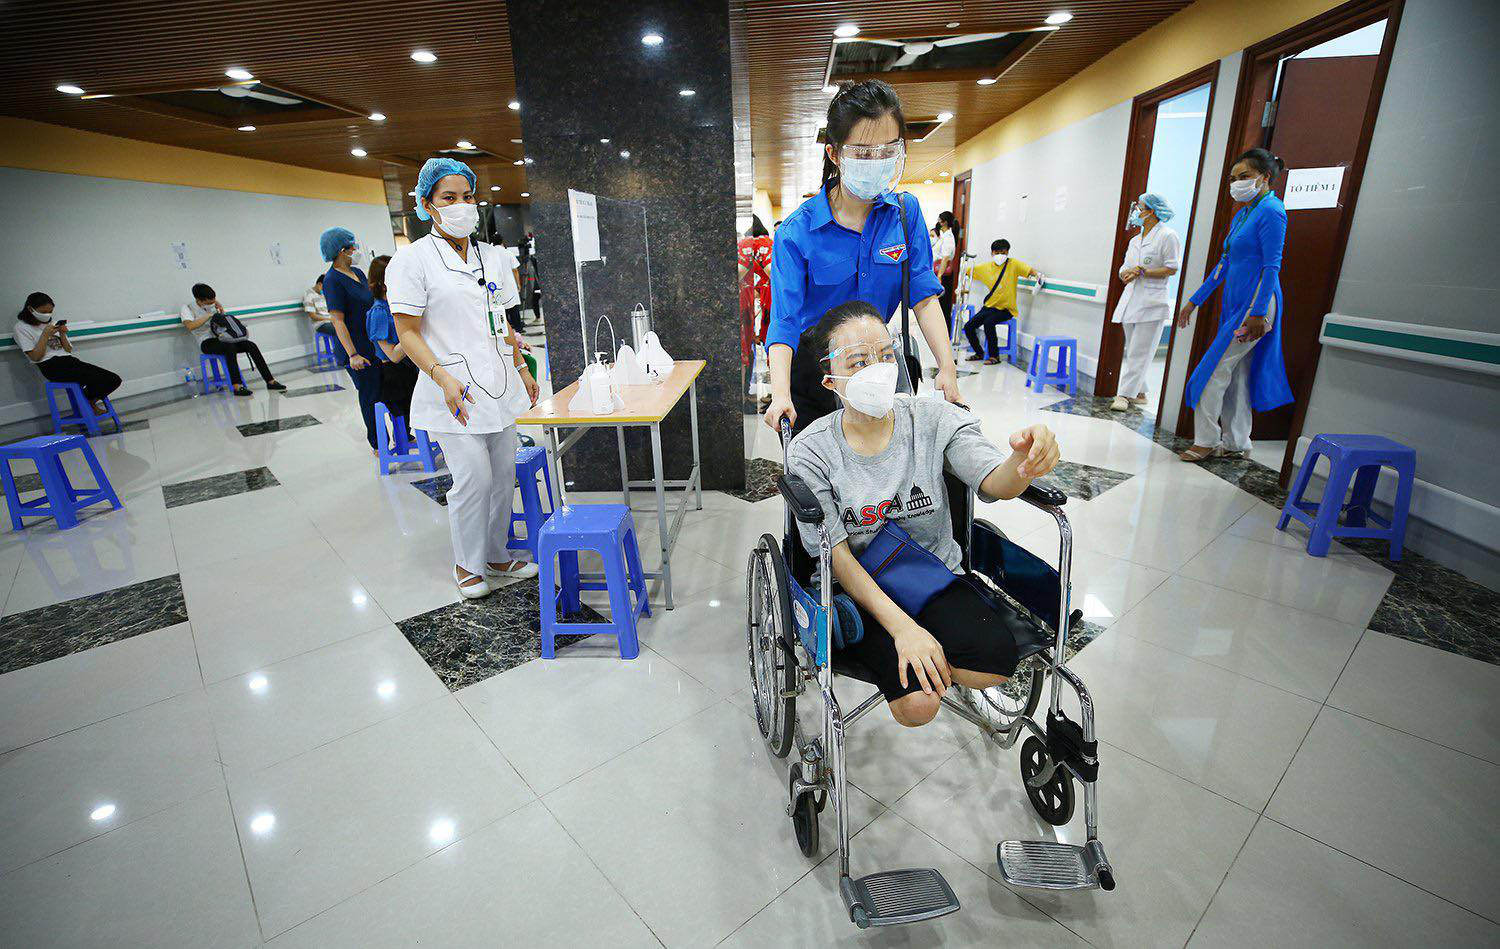 A volunteer moves a disabled worker on a wheel chair to a COVID-19 vaccination room in Hanoi, July 29, 2021. Photo: Ministry of Planning and Investment